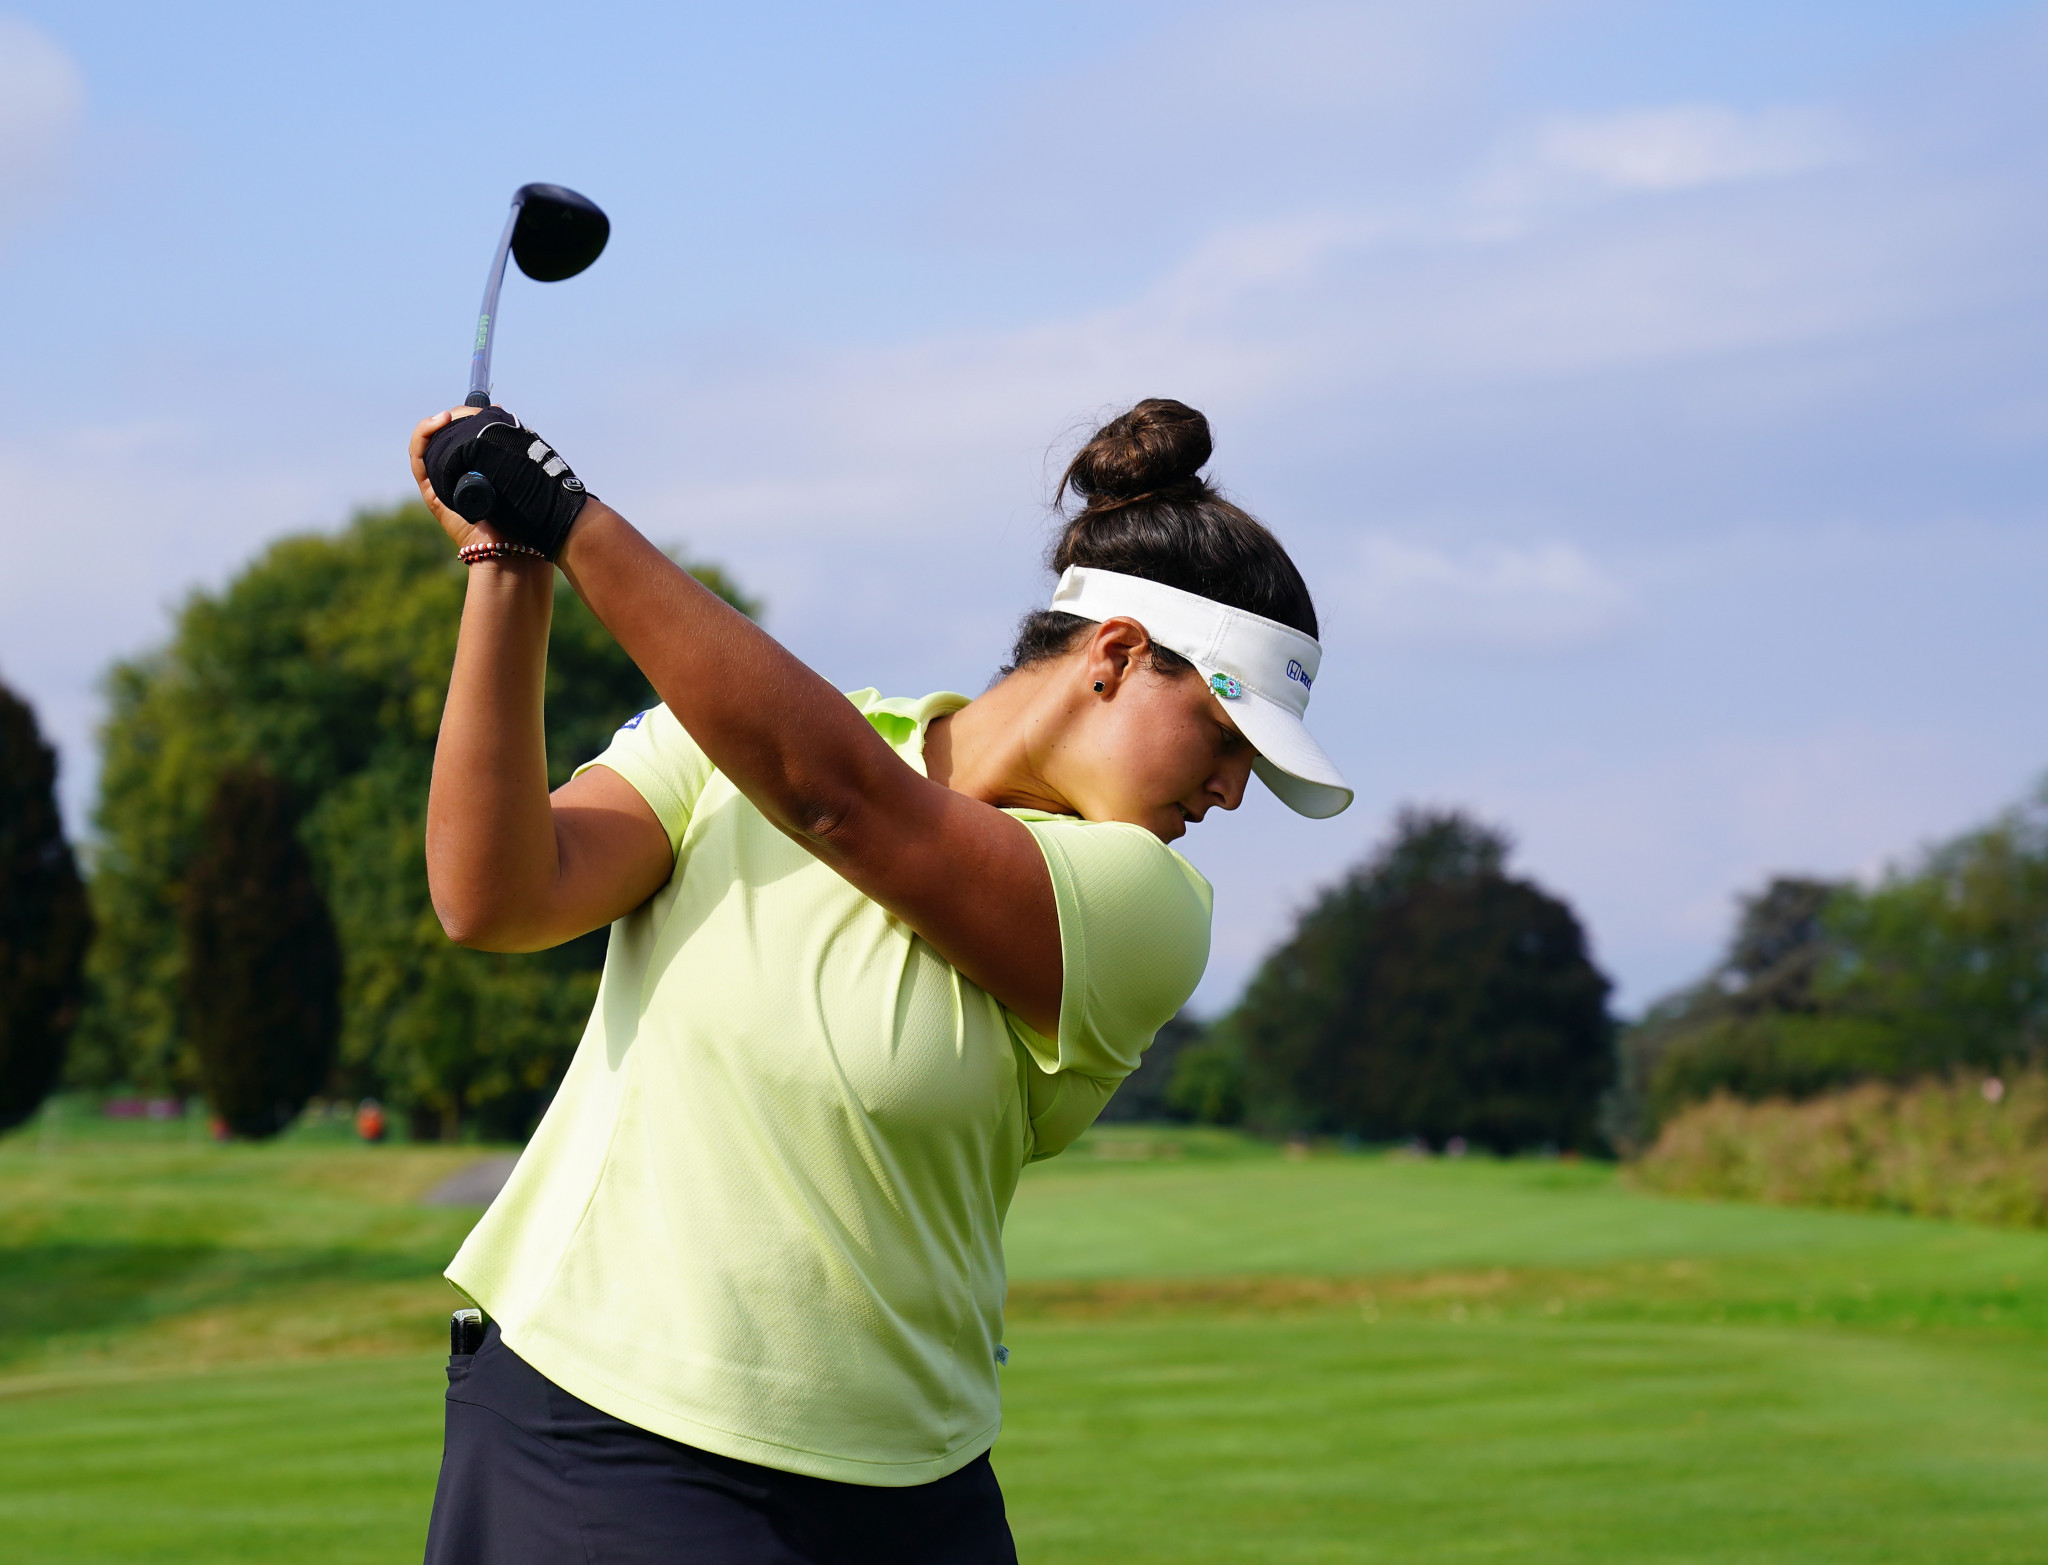 Puerto Rican rookie Maria Torres is joint leader of the Evian LPGA Championship at the halfway point ©Getty Images